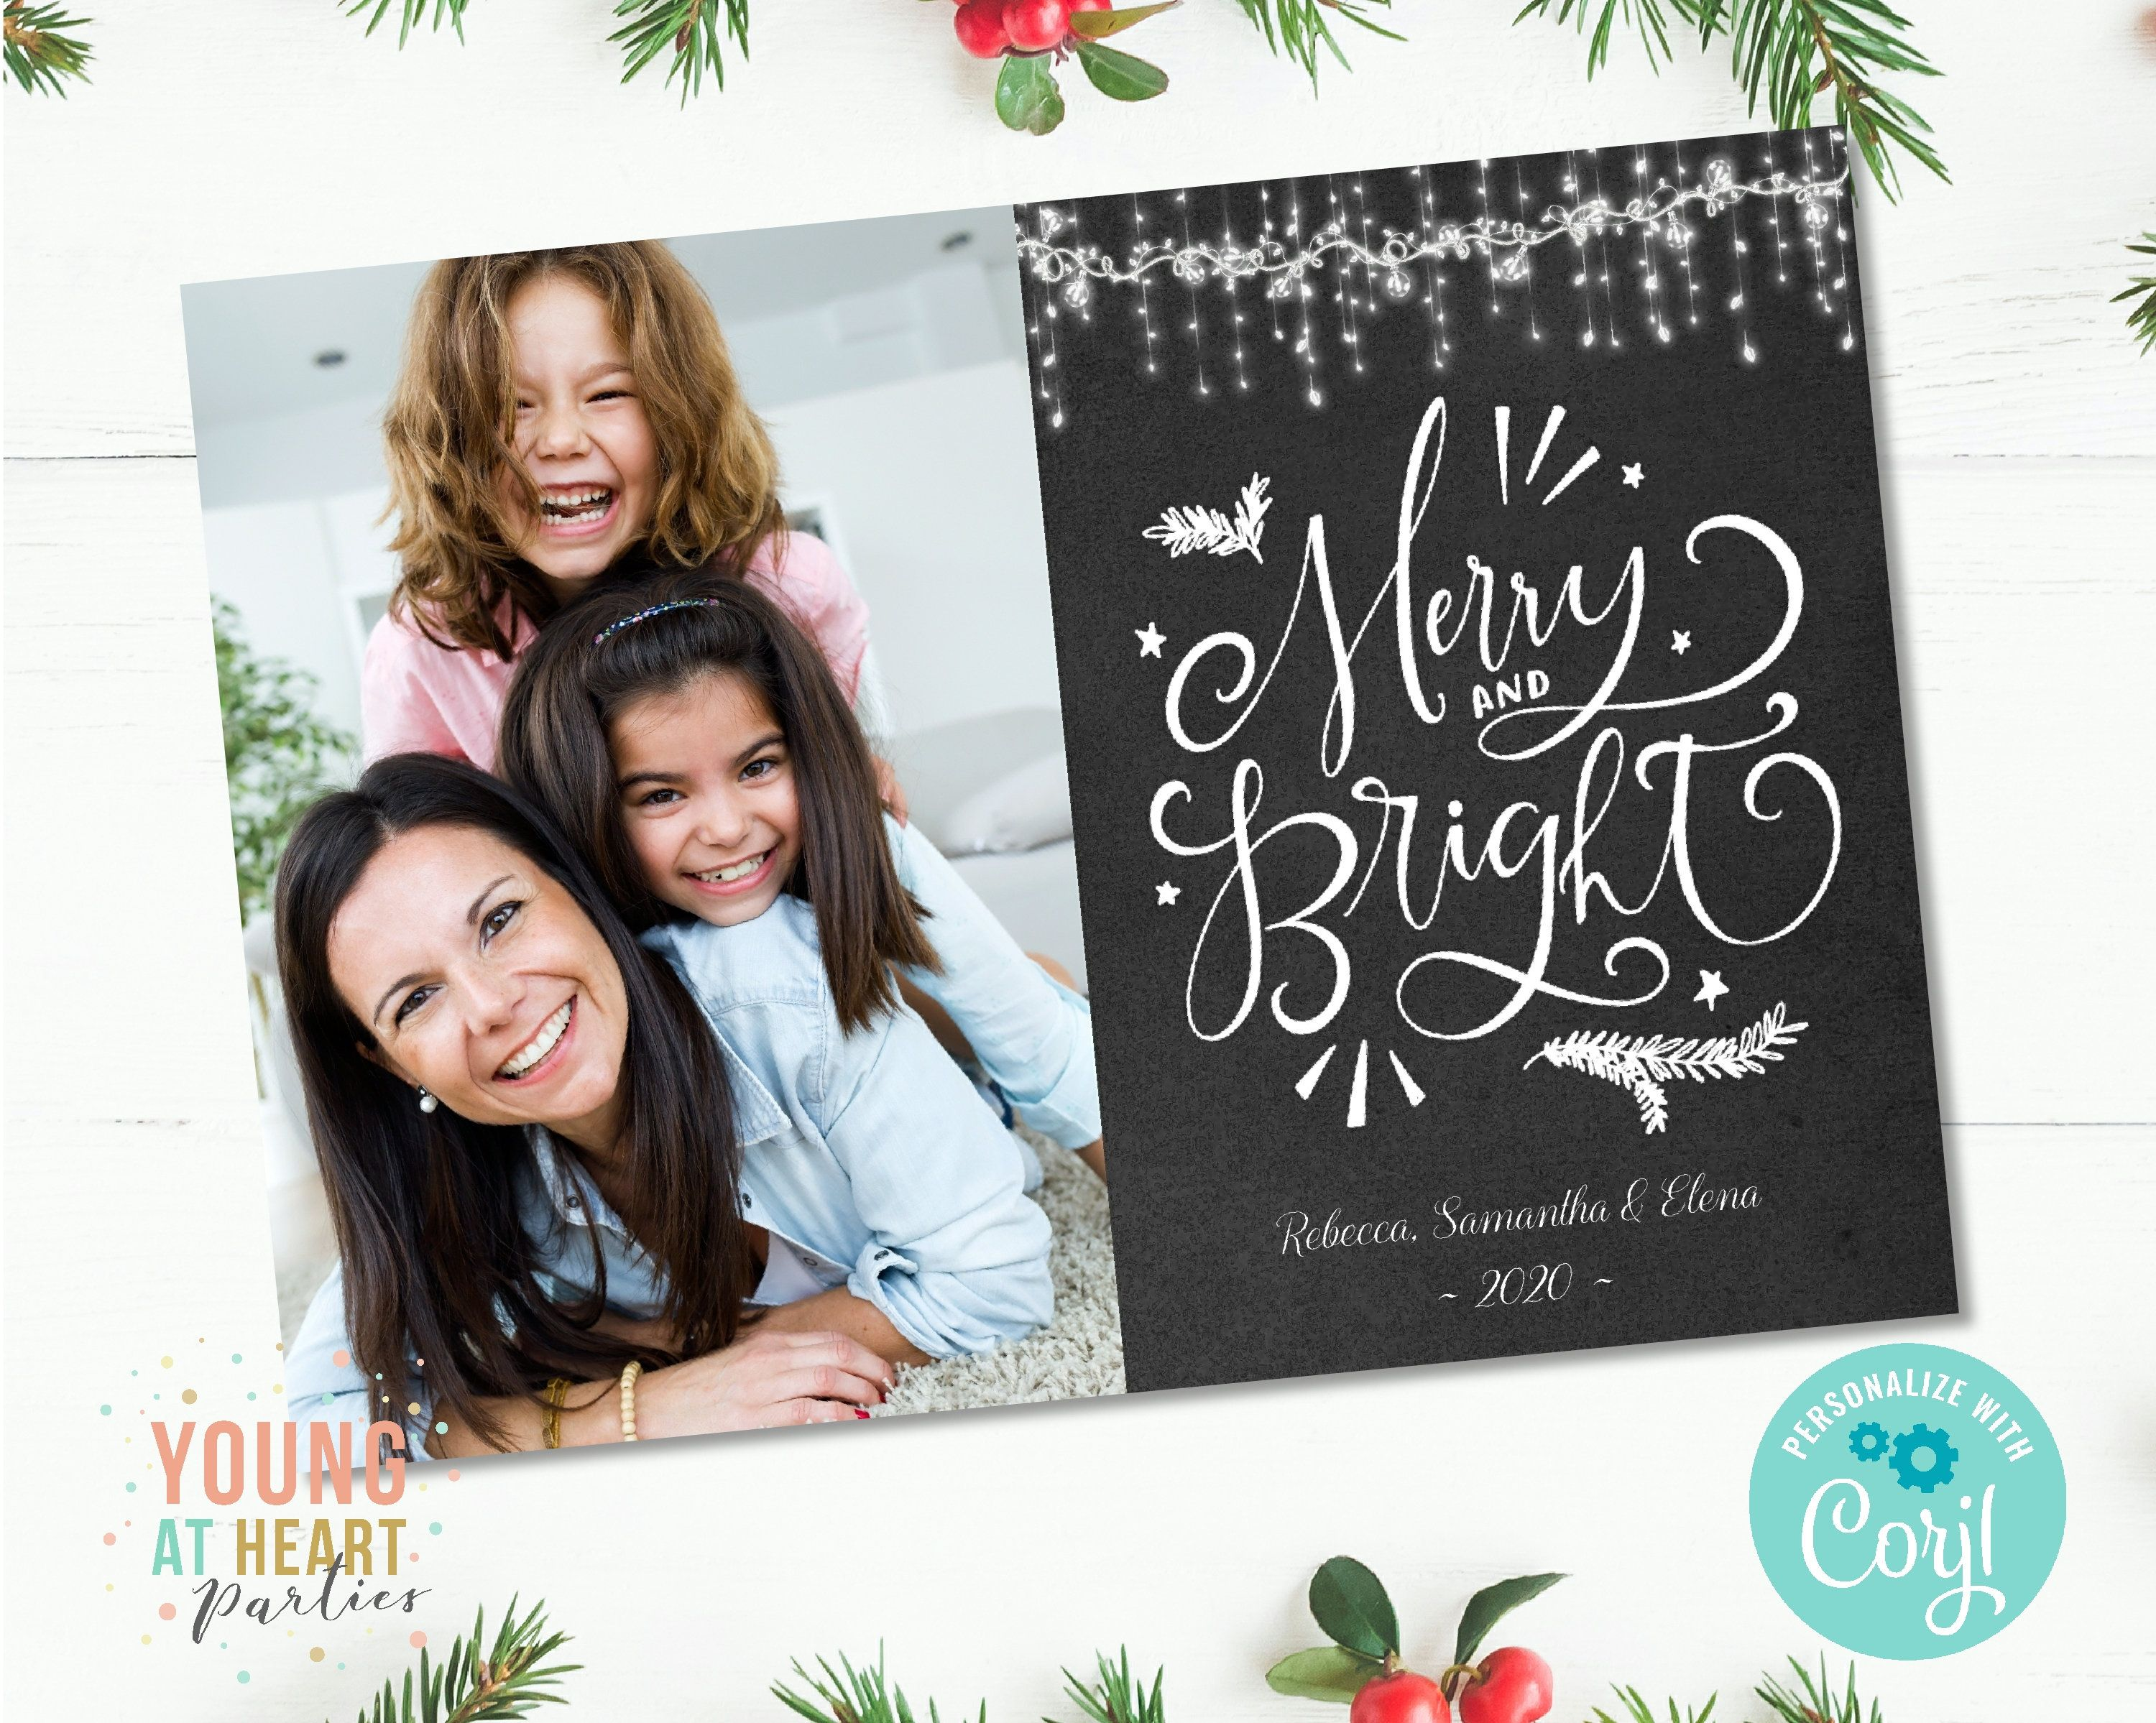 Merry And Bright Christmas Card Christmas Photo Card Etsy Christmas Photo Cards Christmas Photo Card Template Holiday Photo Cards